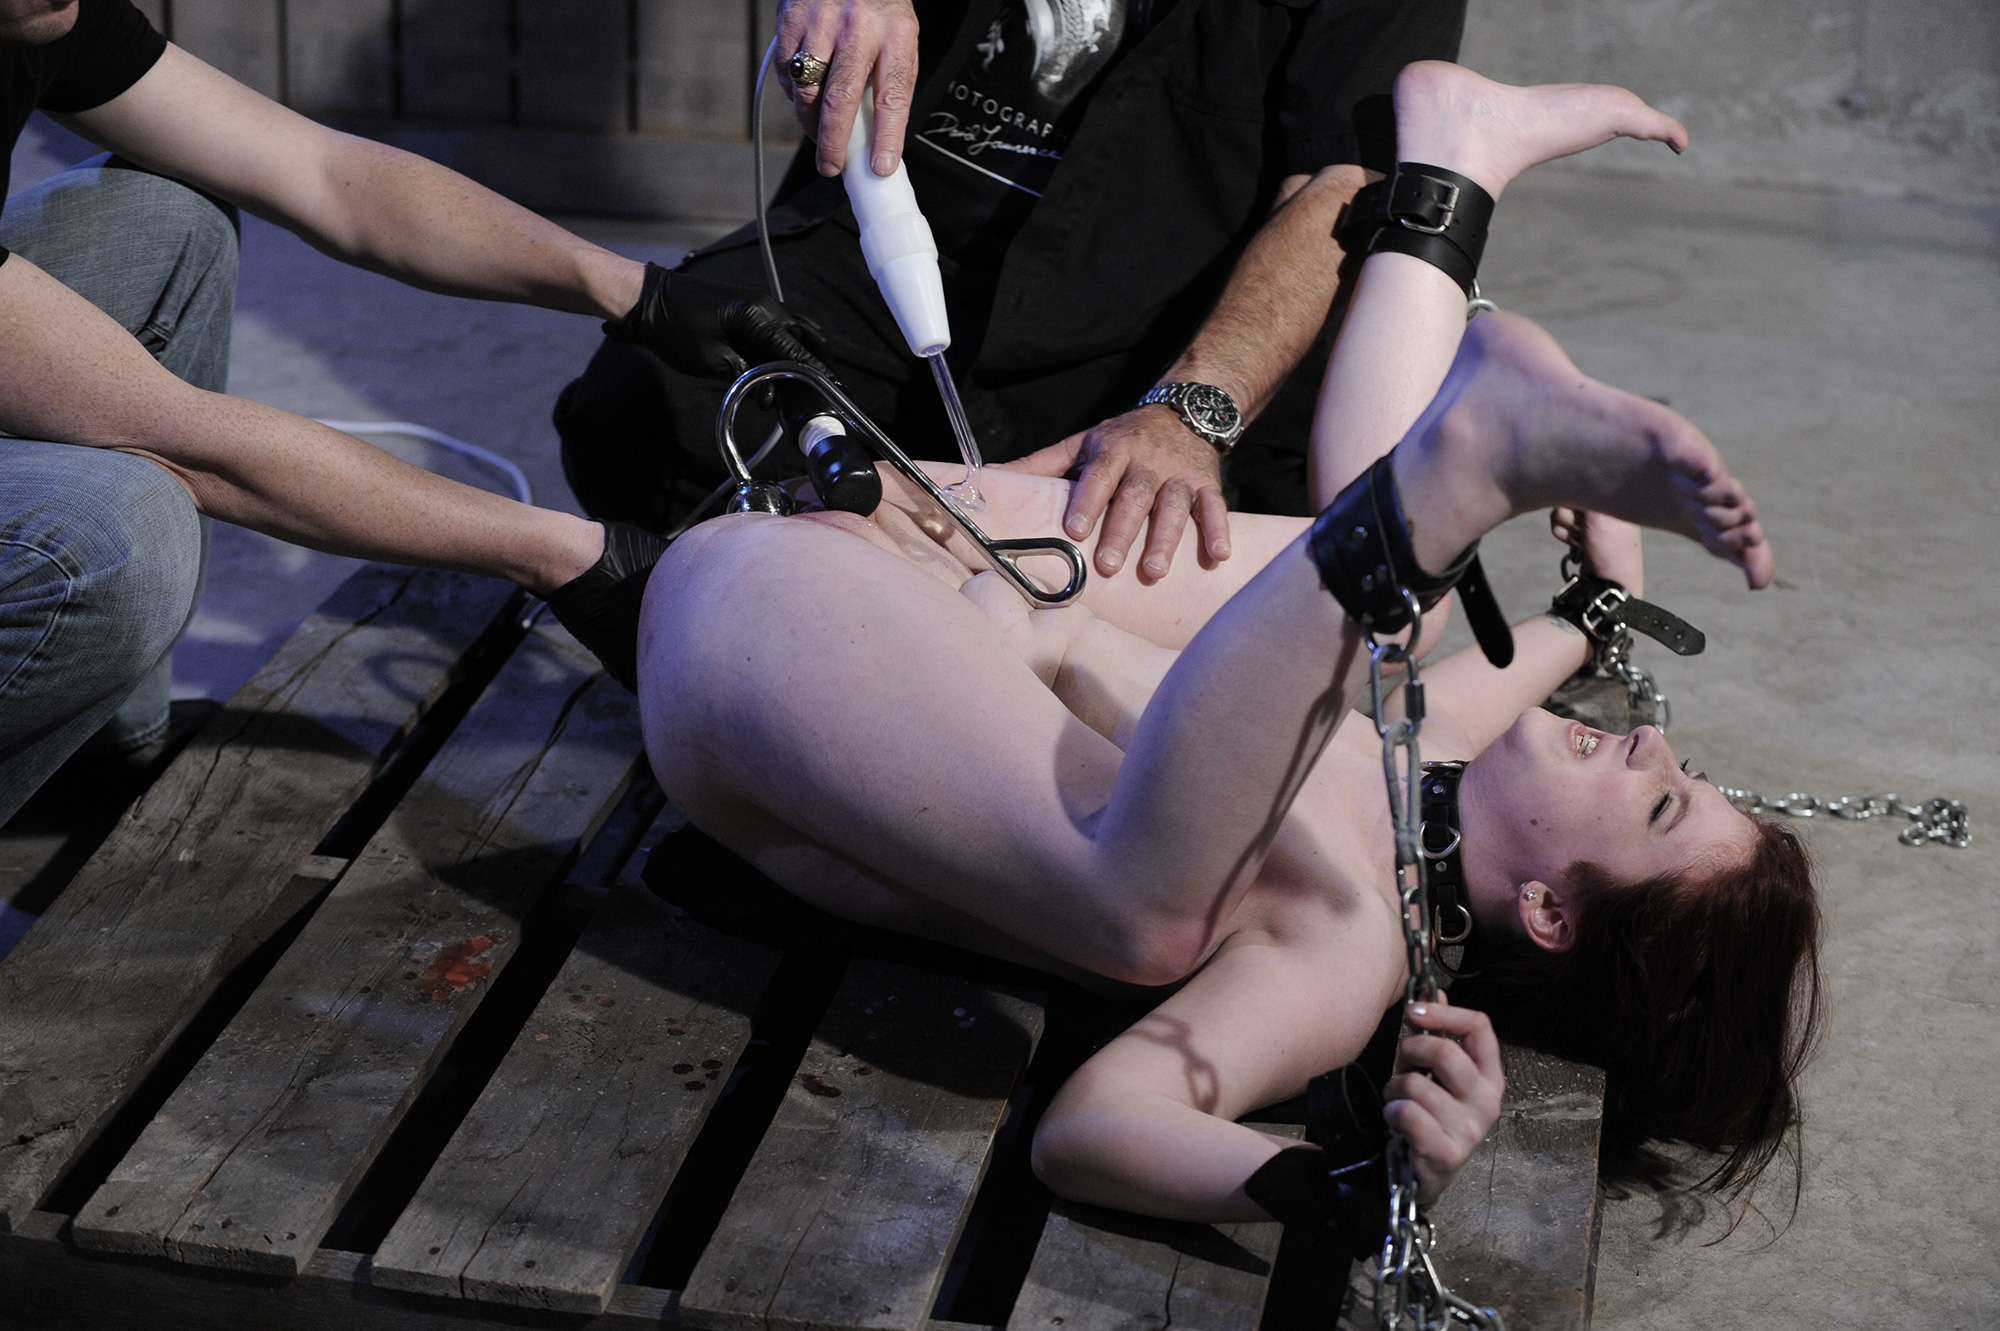 bdsm sex play